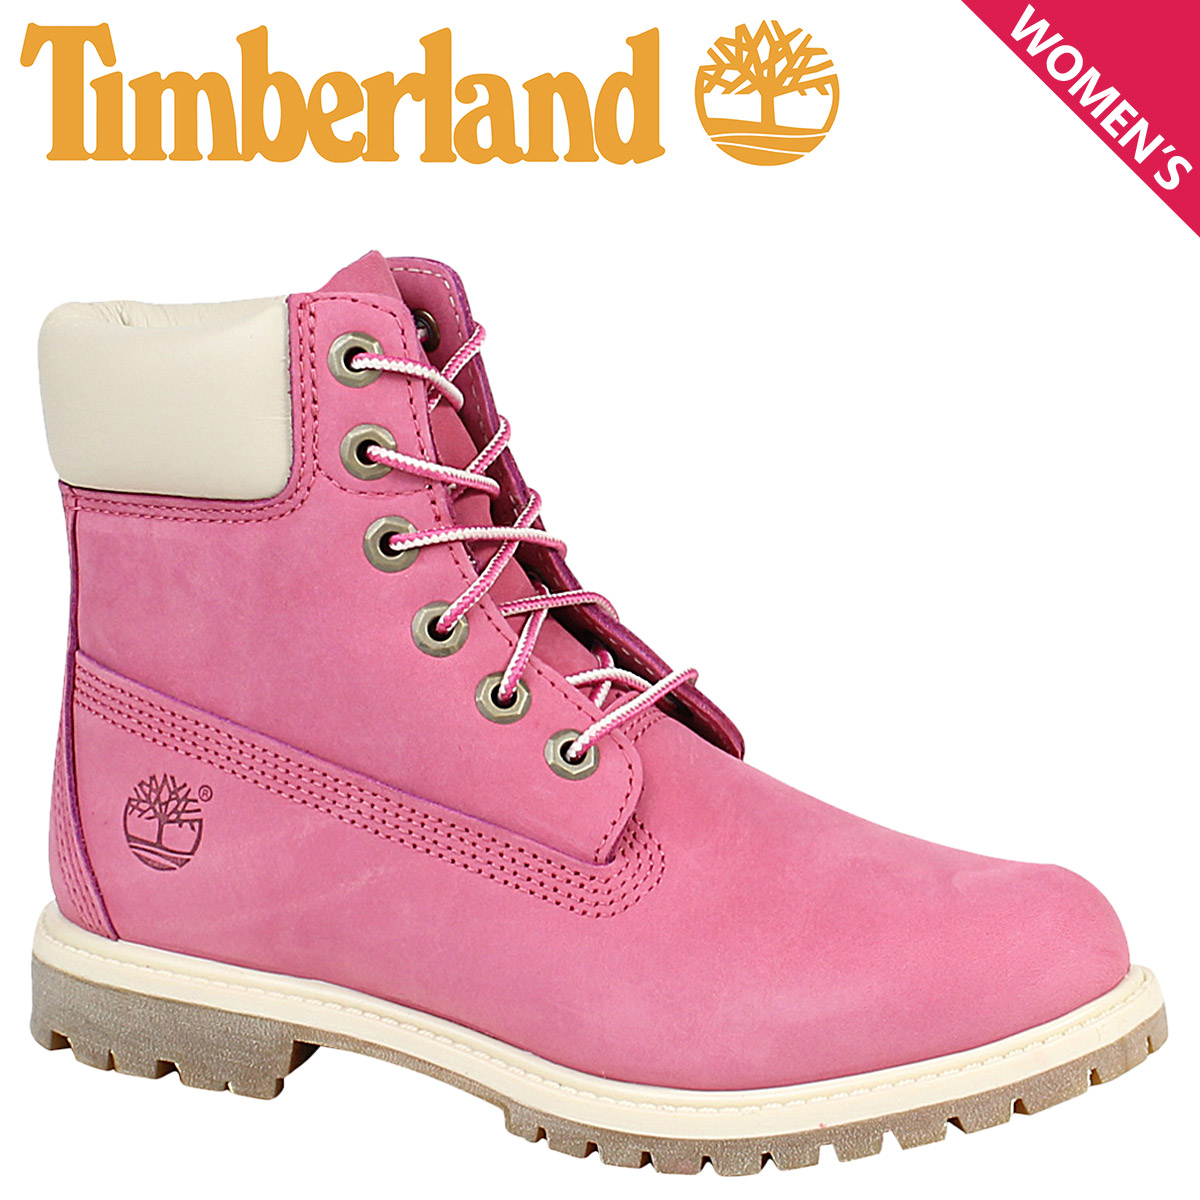 Timberland Timberland Lady's 6INCHI 6 inches premium boots WOMENS 6 INCH PREMIUM WATERPROOF BOOTS A19D8 W Wise waterproofing fuchsia